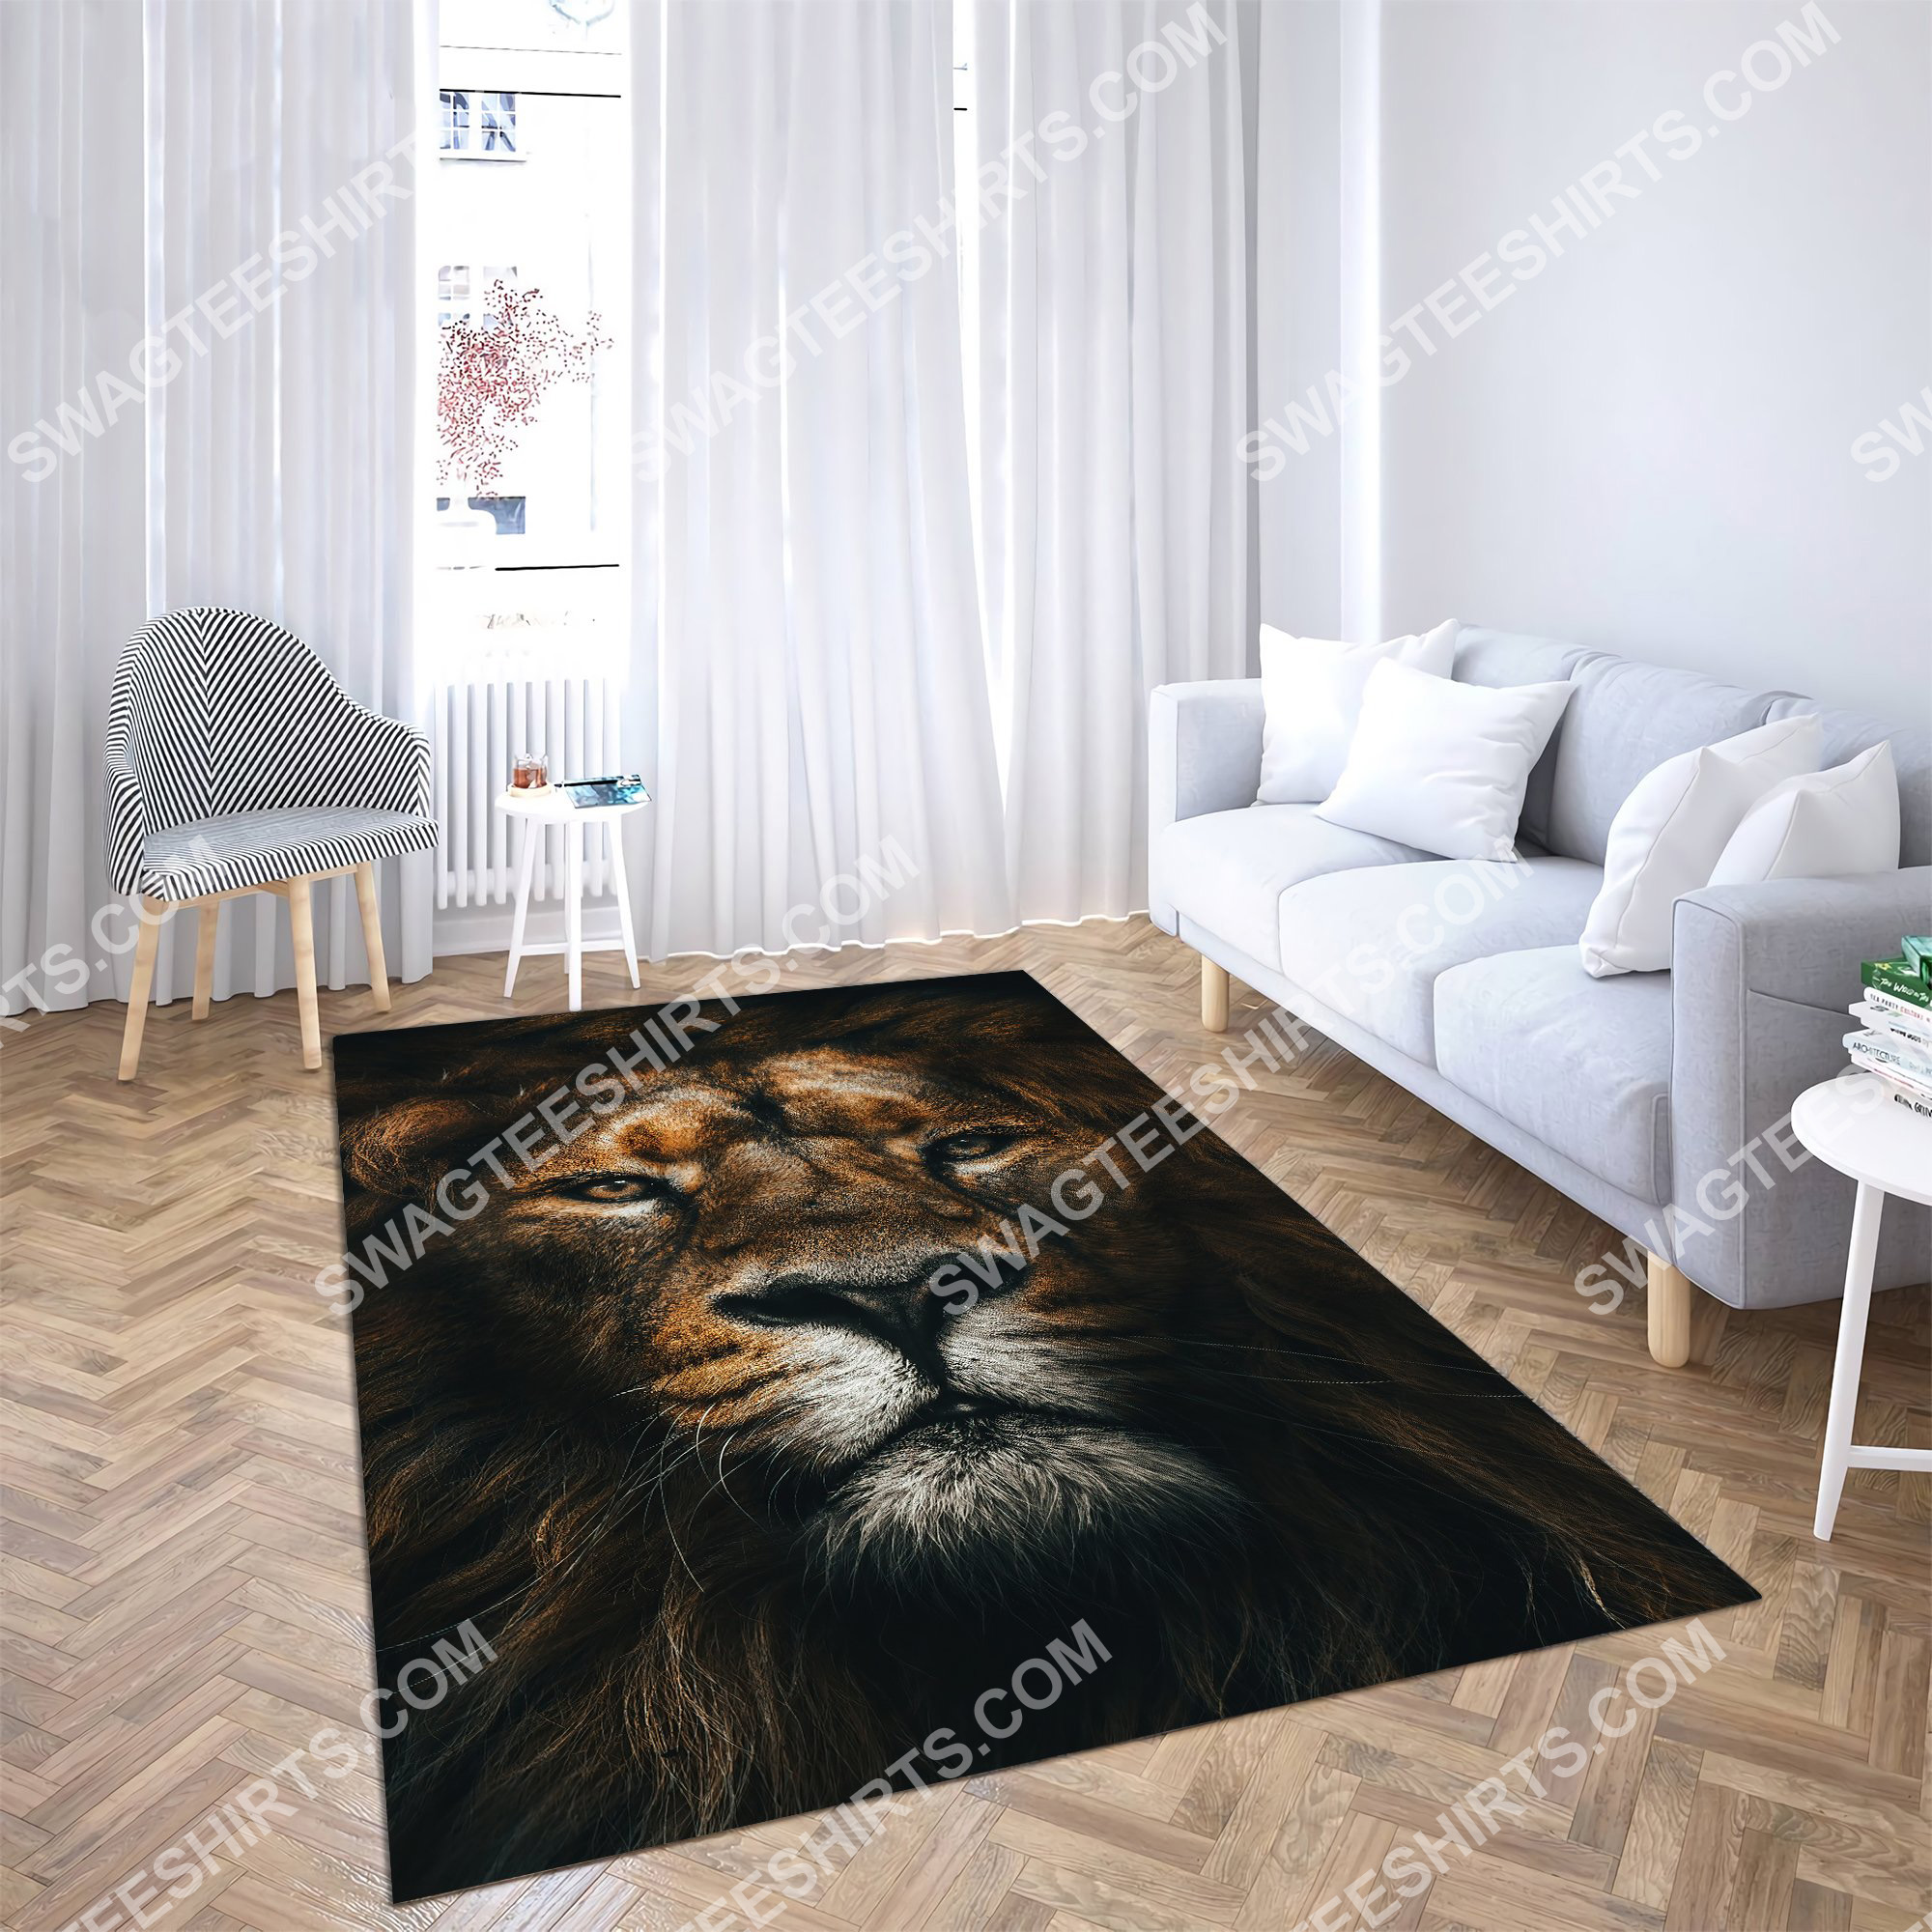 the lion retro all over printed rug 4(1)